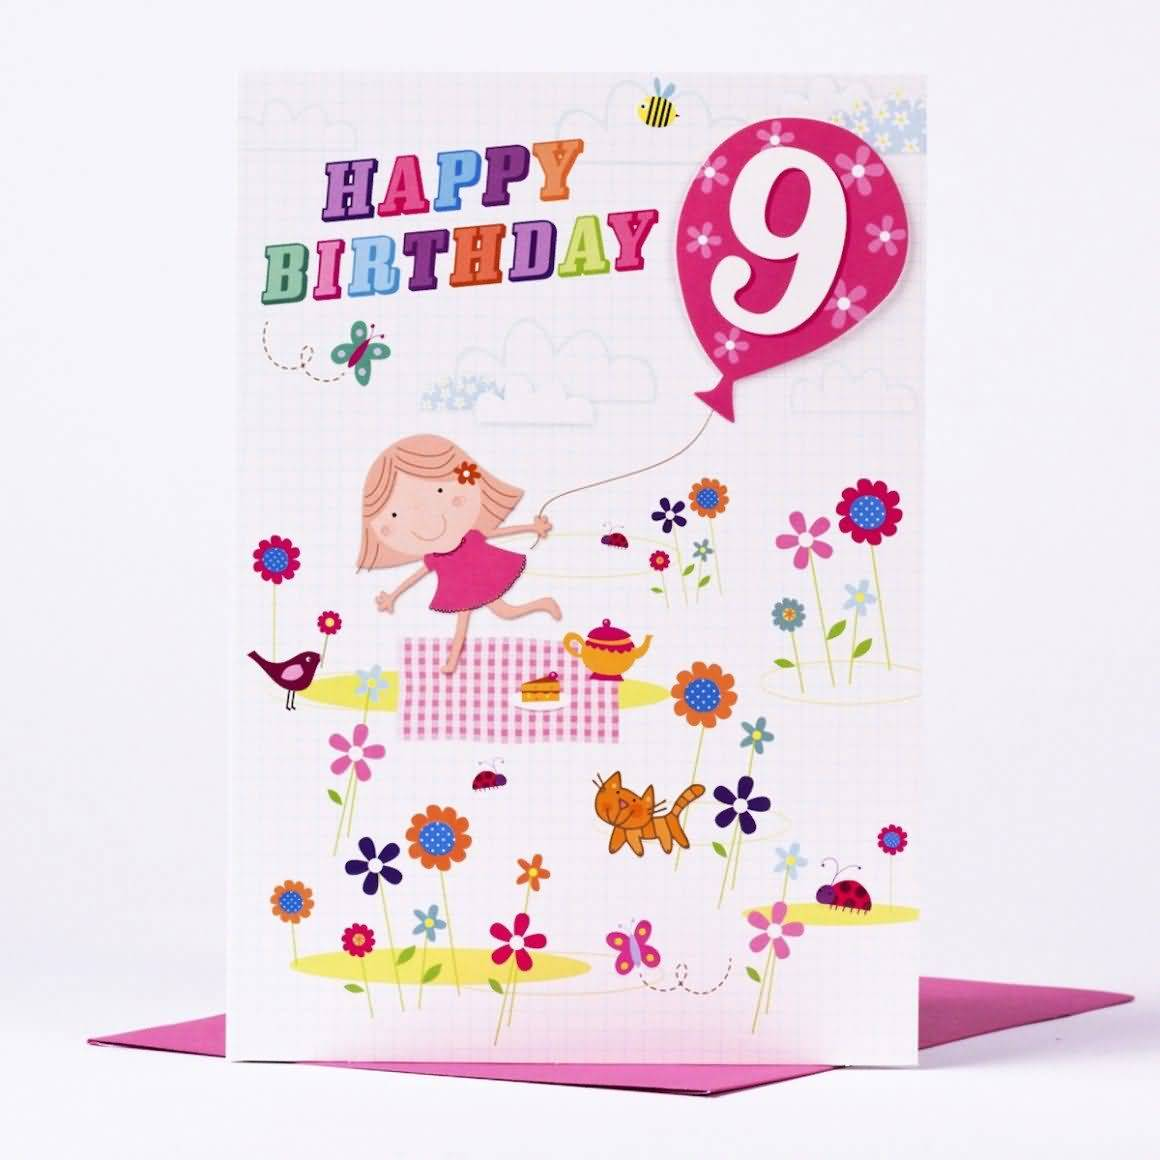 Cool 9th Birthday Image For Kid